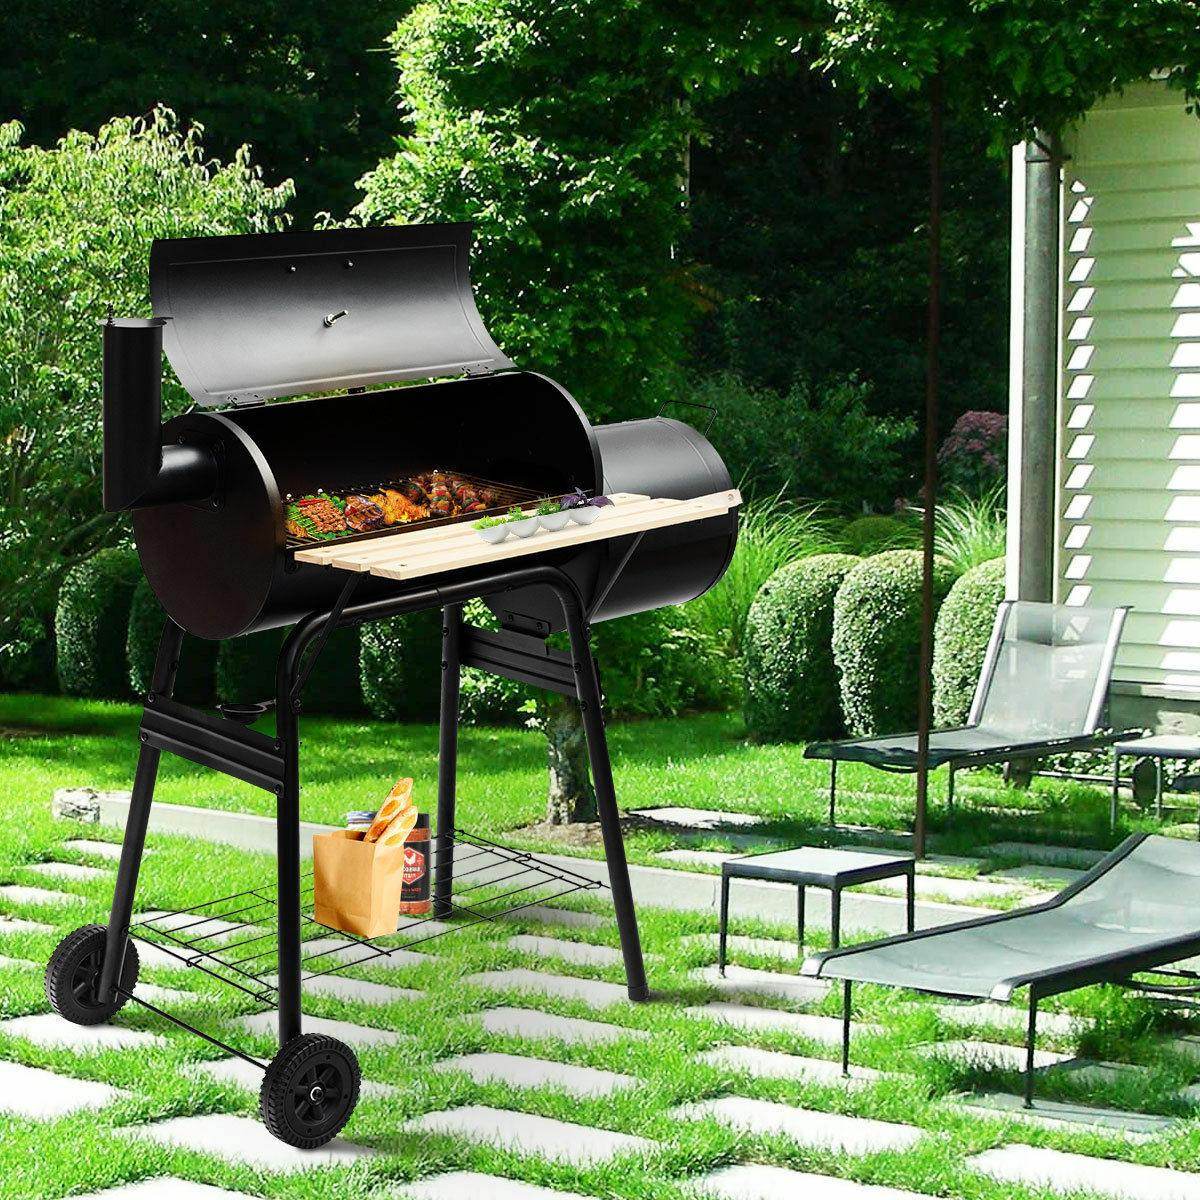 Goplus Outdoor BBQ Grill Charcoal Barbecue Pit Patio